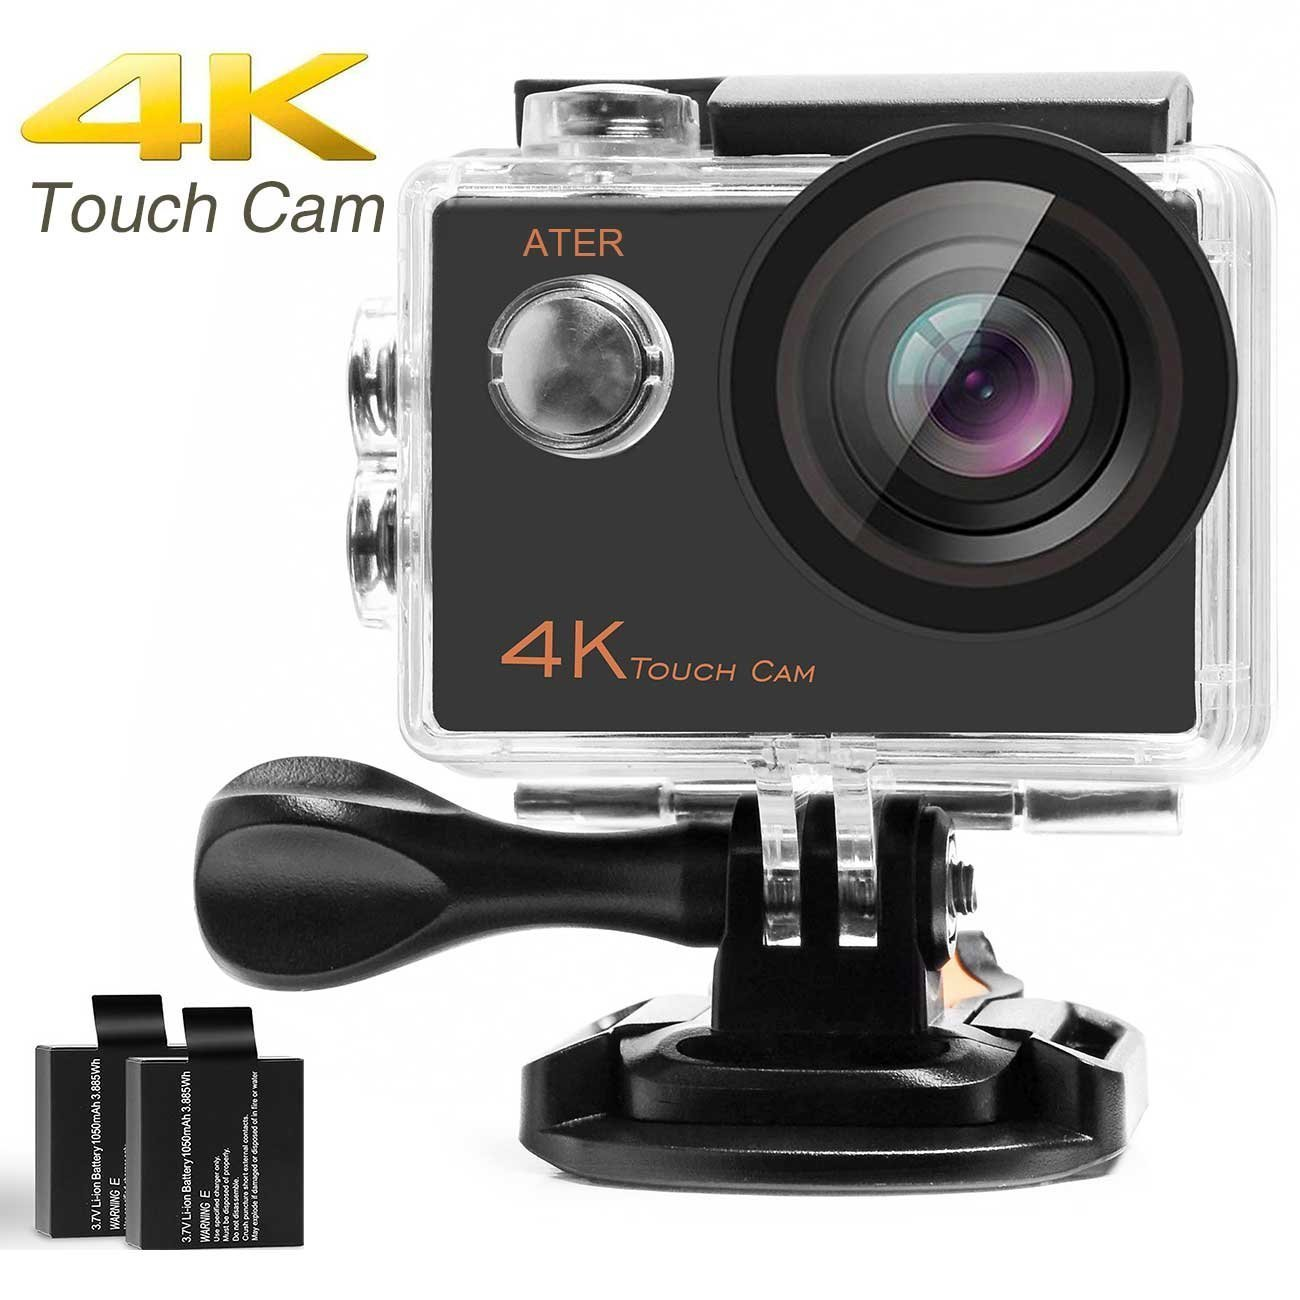 4K Touch Action Camera WIFI Ultra HD 16MP 30m Underwater Waterproof Camcorder 170 Degree Wide Angle 2 inch LCD Screen Sports Cam with Mounting Kits